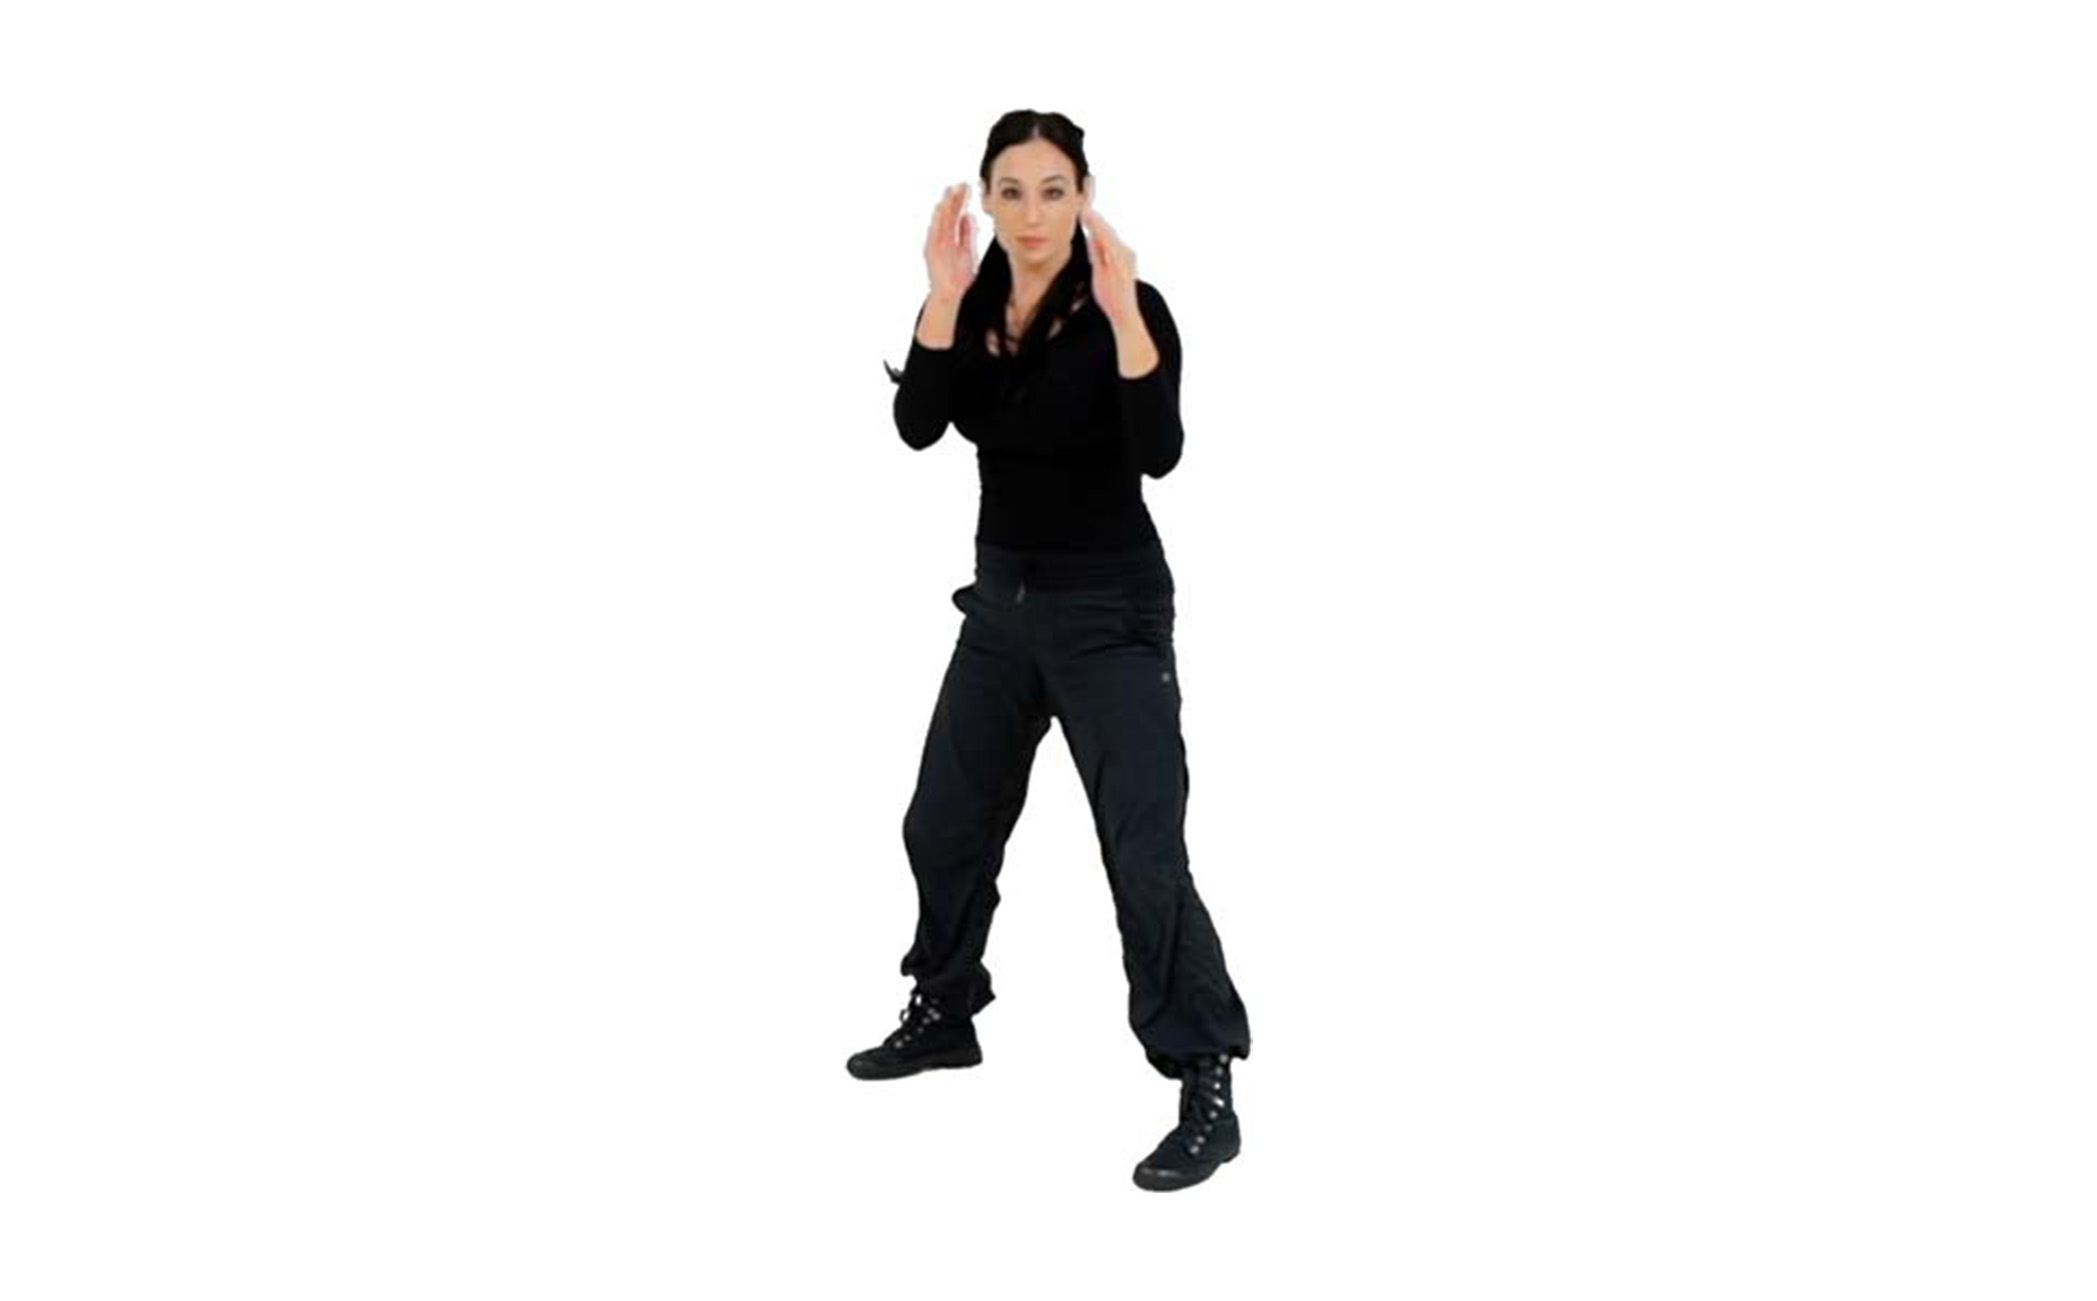 Step 4 - Once your foot is flat on the ground, raise your chest to return to your full Survival Stance with both hands protecting your face, and ready to engage in combatives or to run and escape.